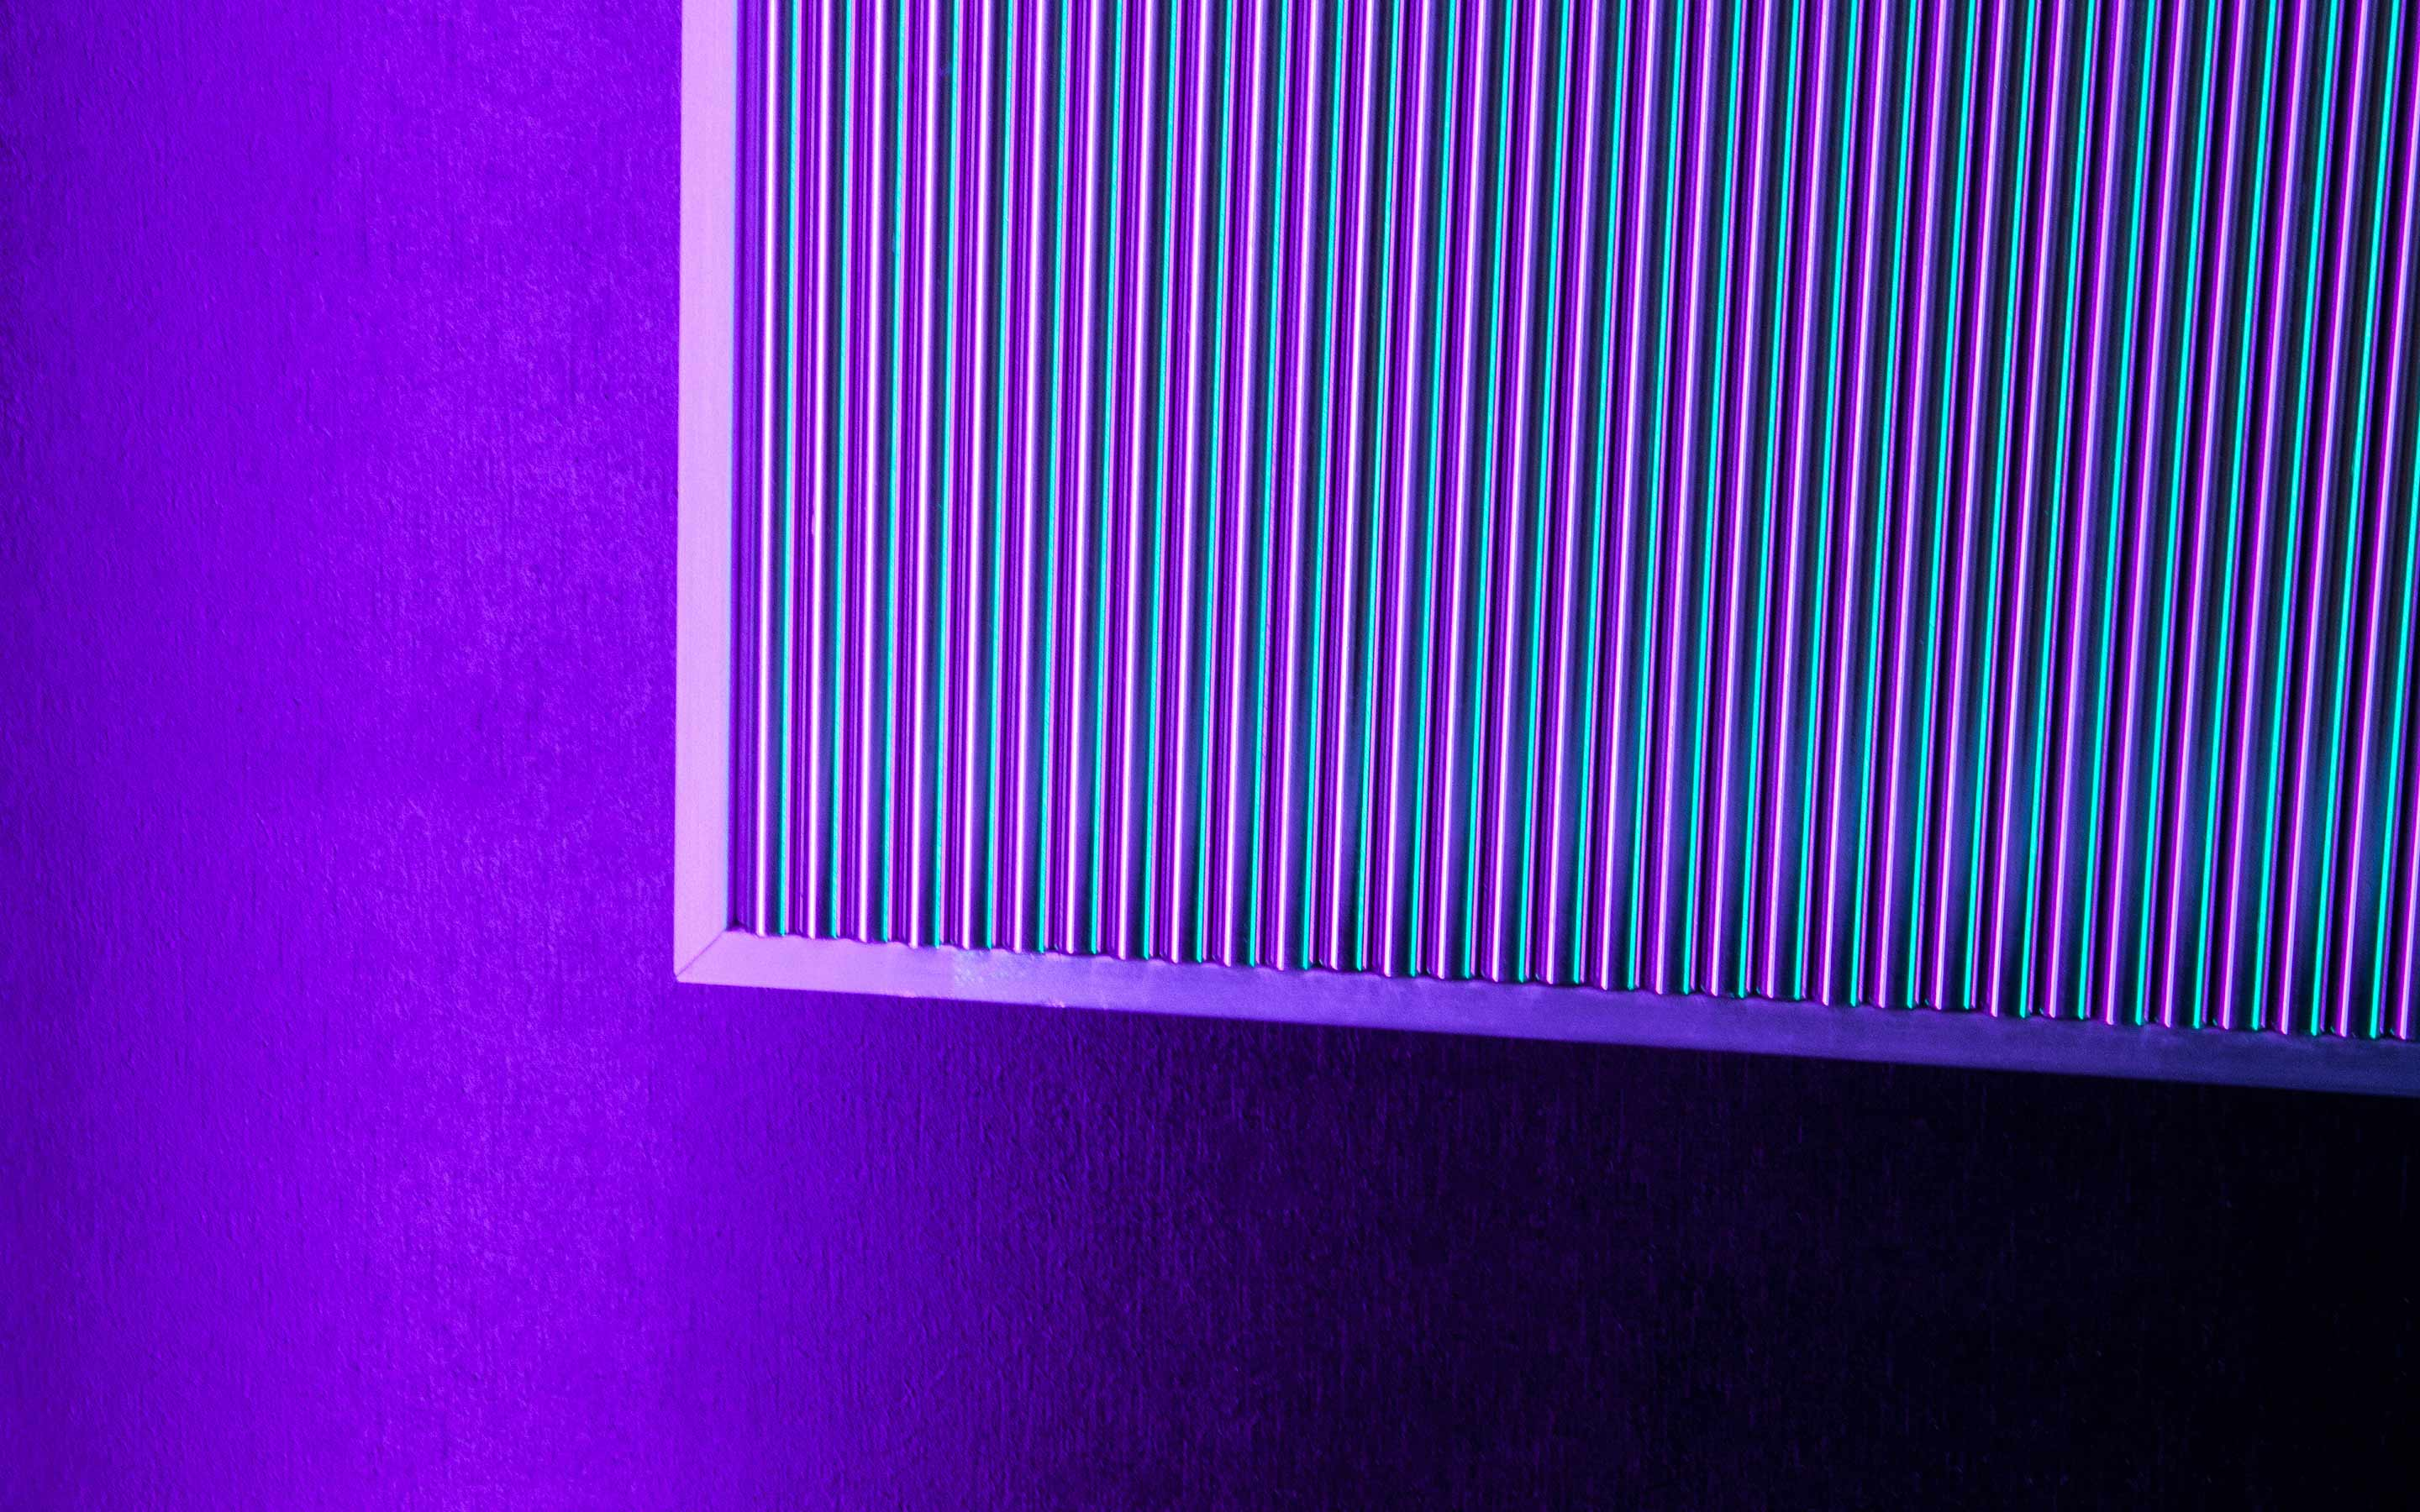 04-chromatic-oscillation-in-steel-haberdashery-w-slideshow